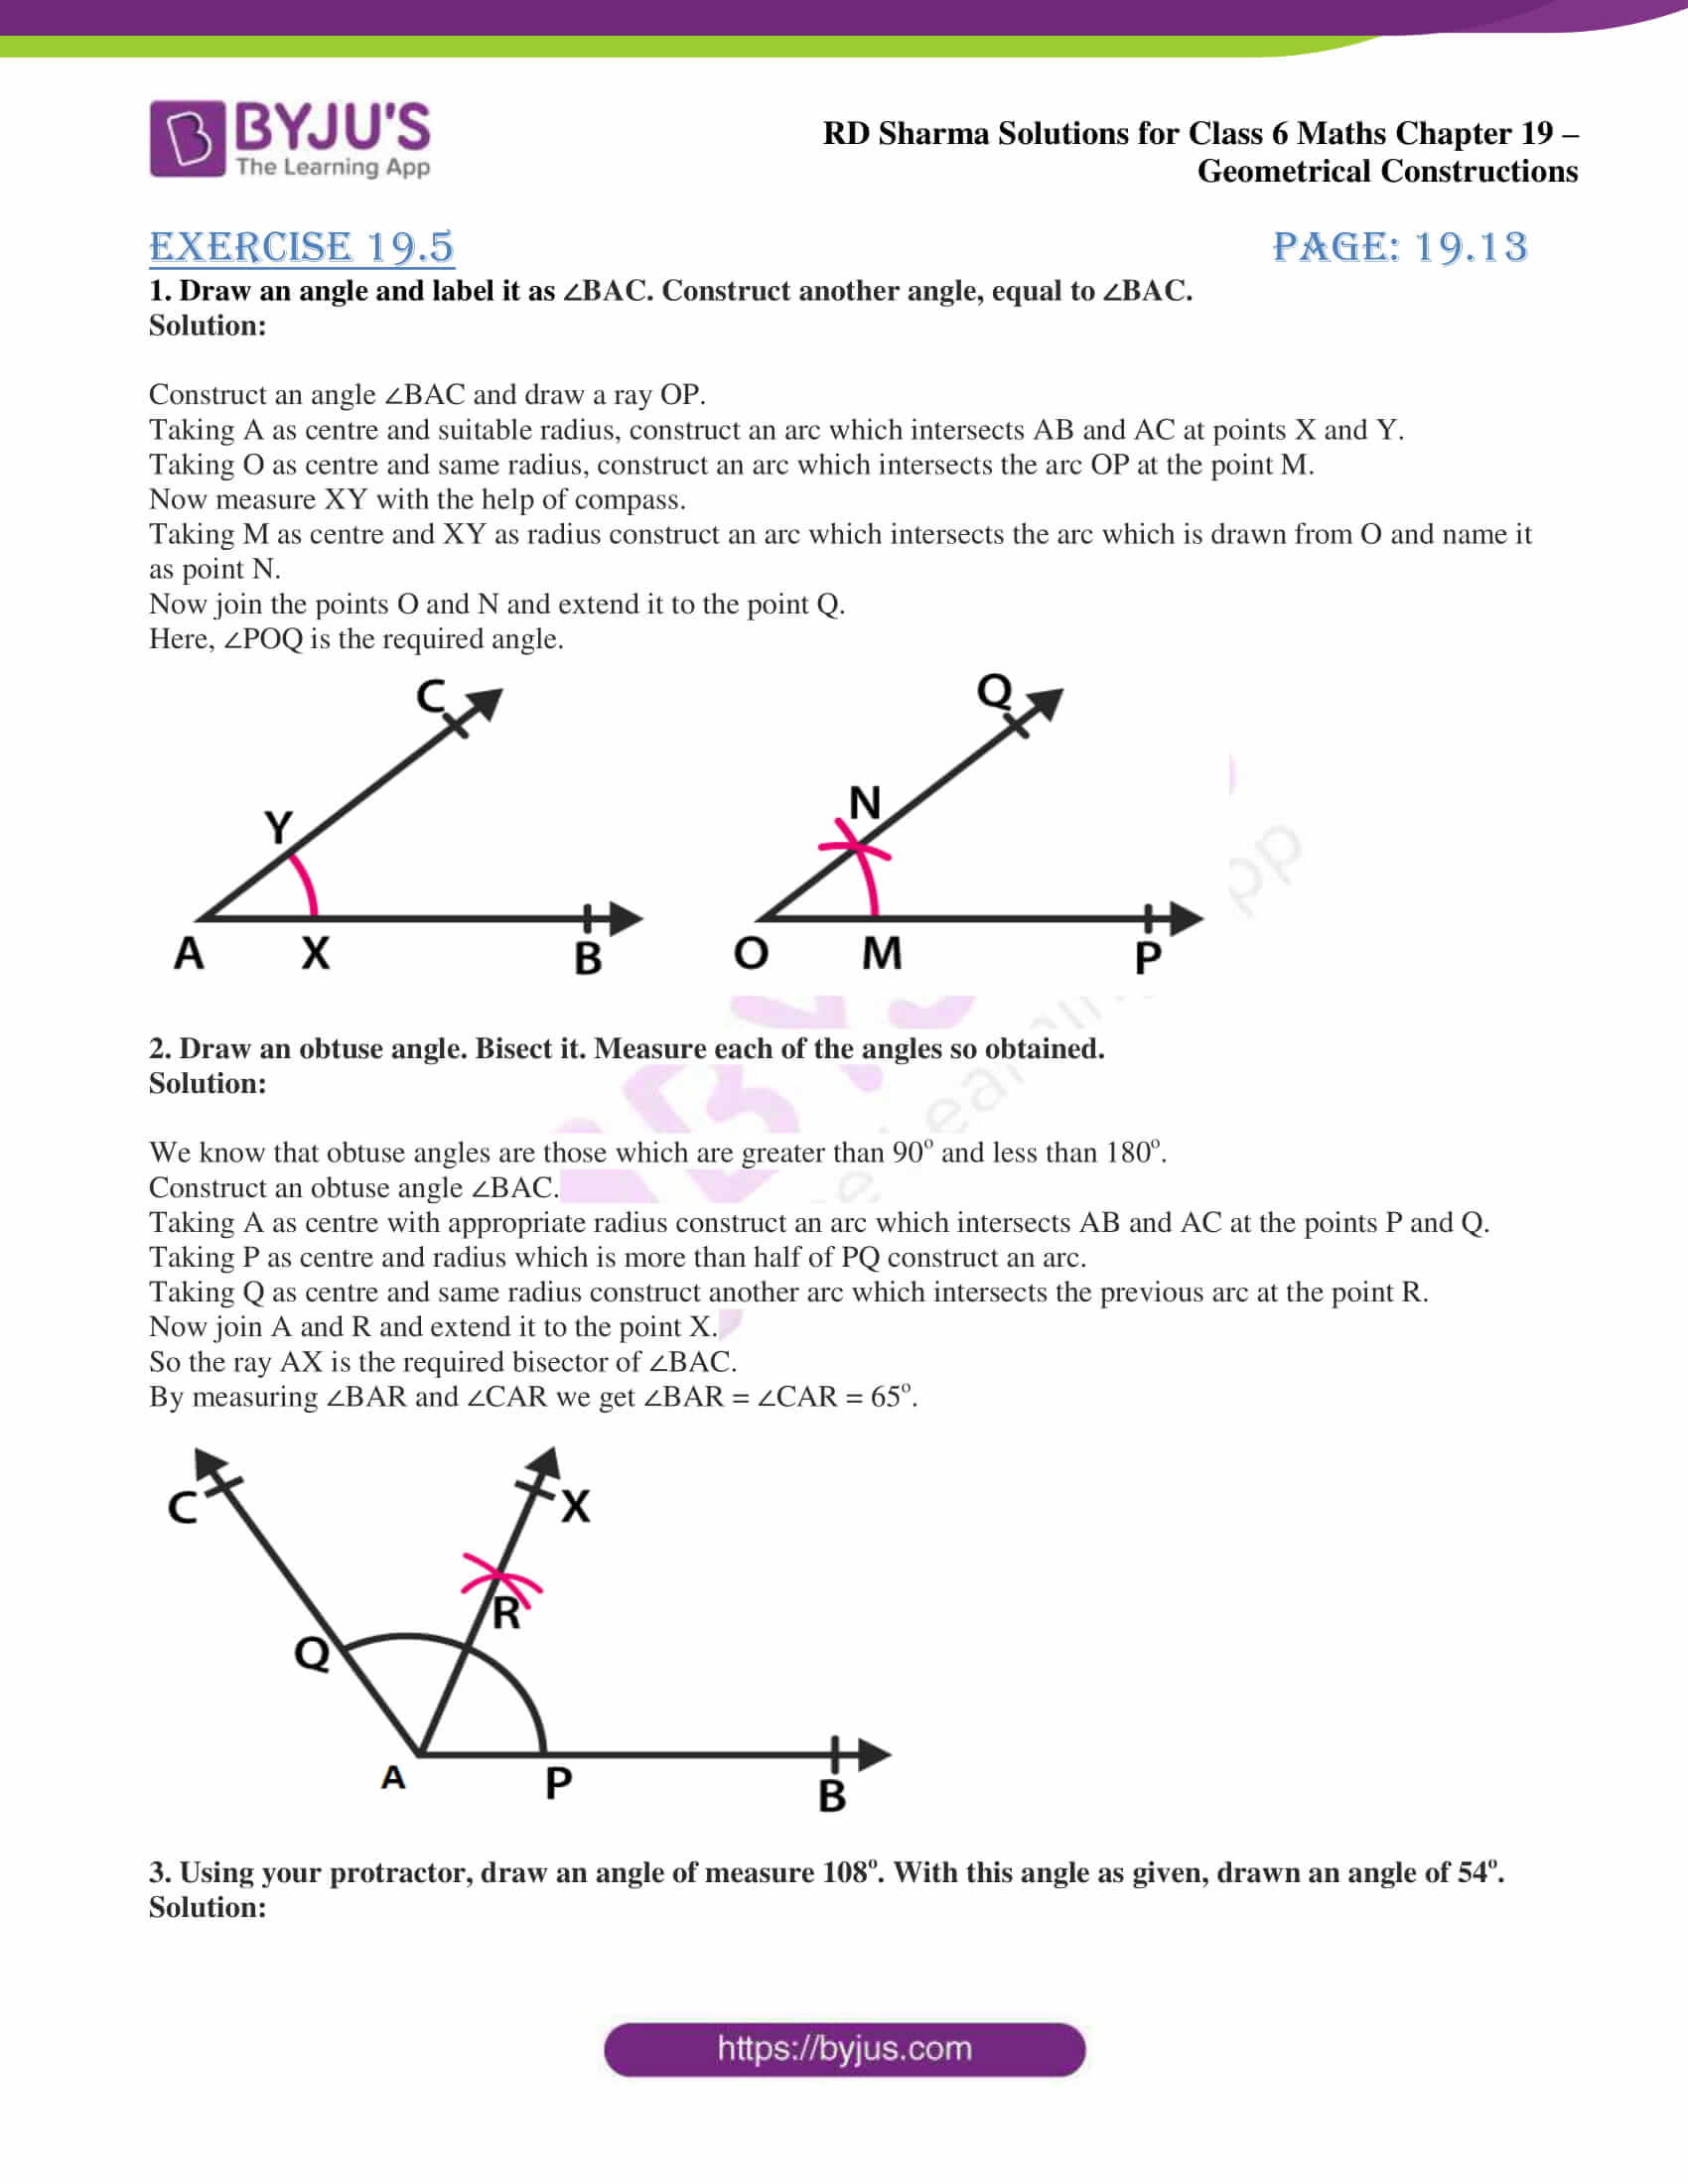 rd sharma solutions nov2020 class 6 maths chapter 19 exercise 5 1